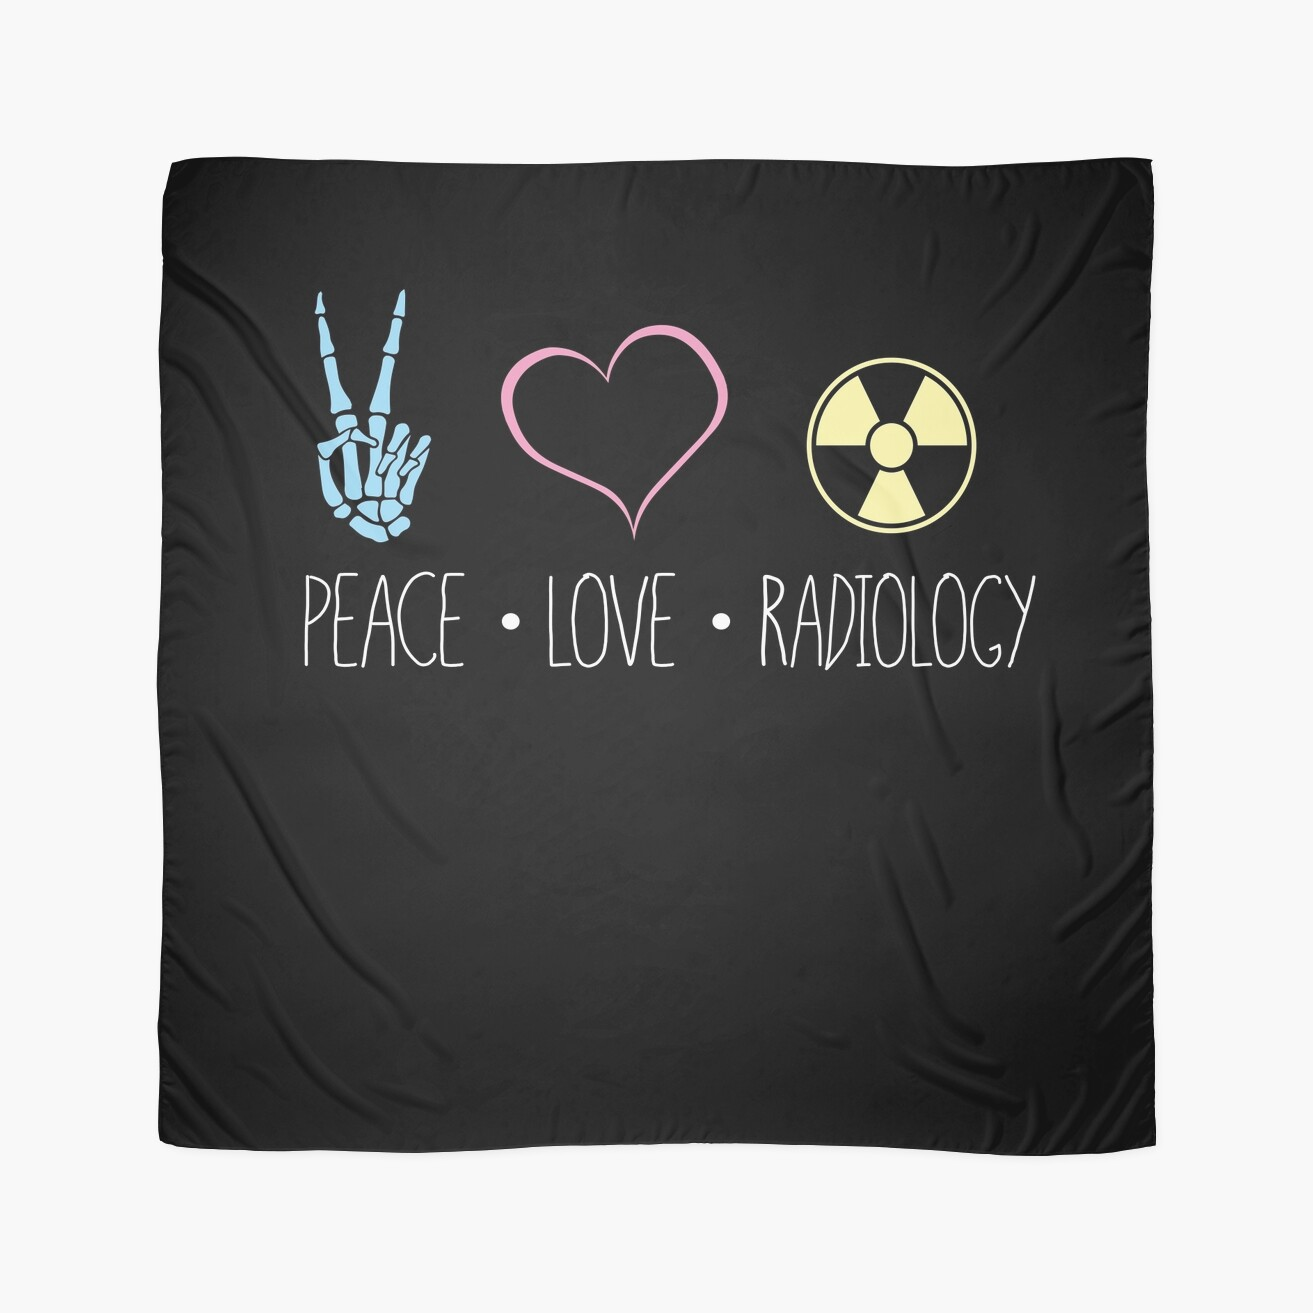 Peace love and radiology rad tech rt scarves by scott jay peace love and radiology rad tech rt buycottarizona Image collections